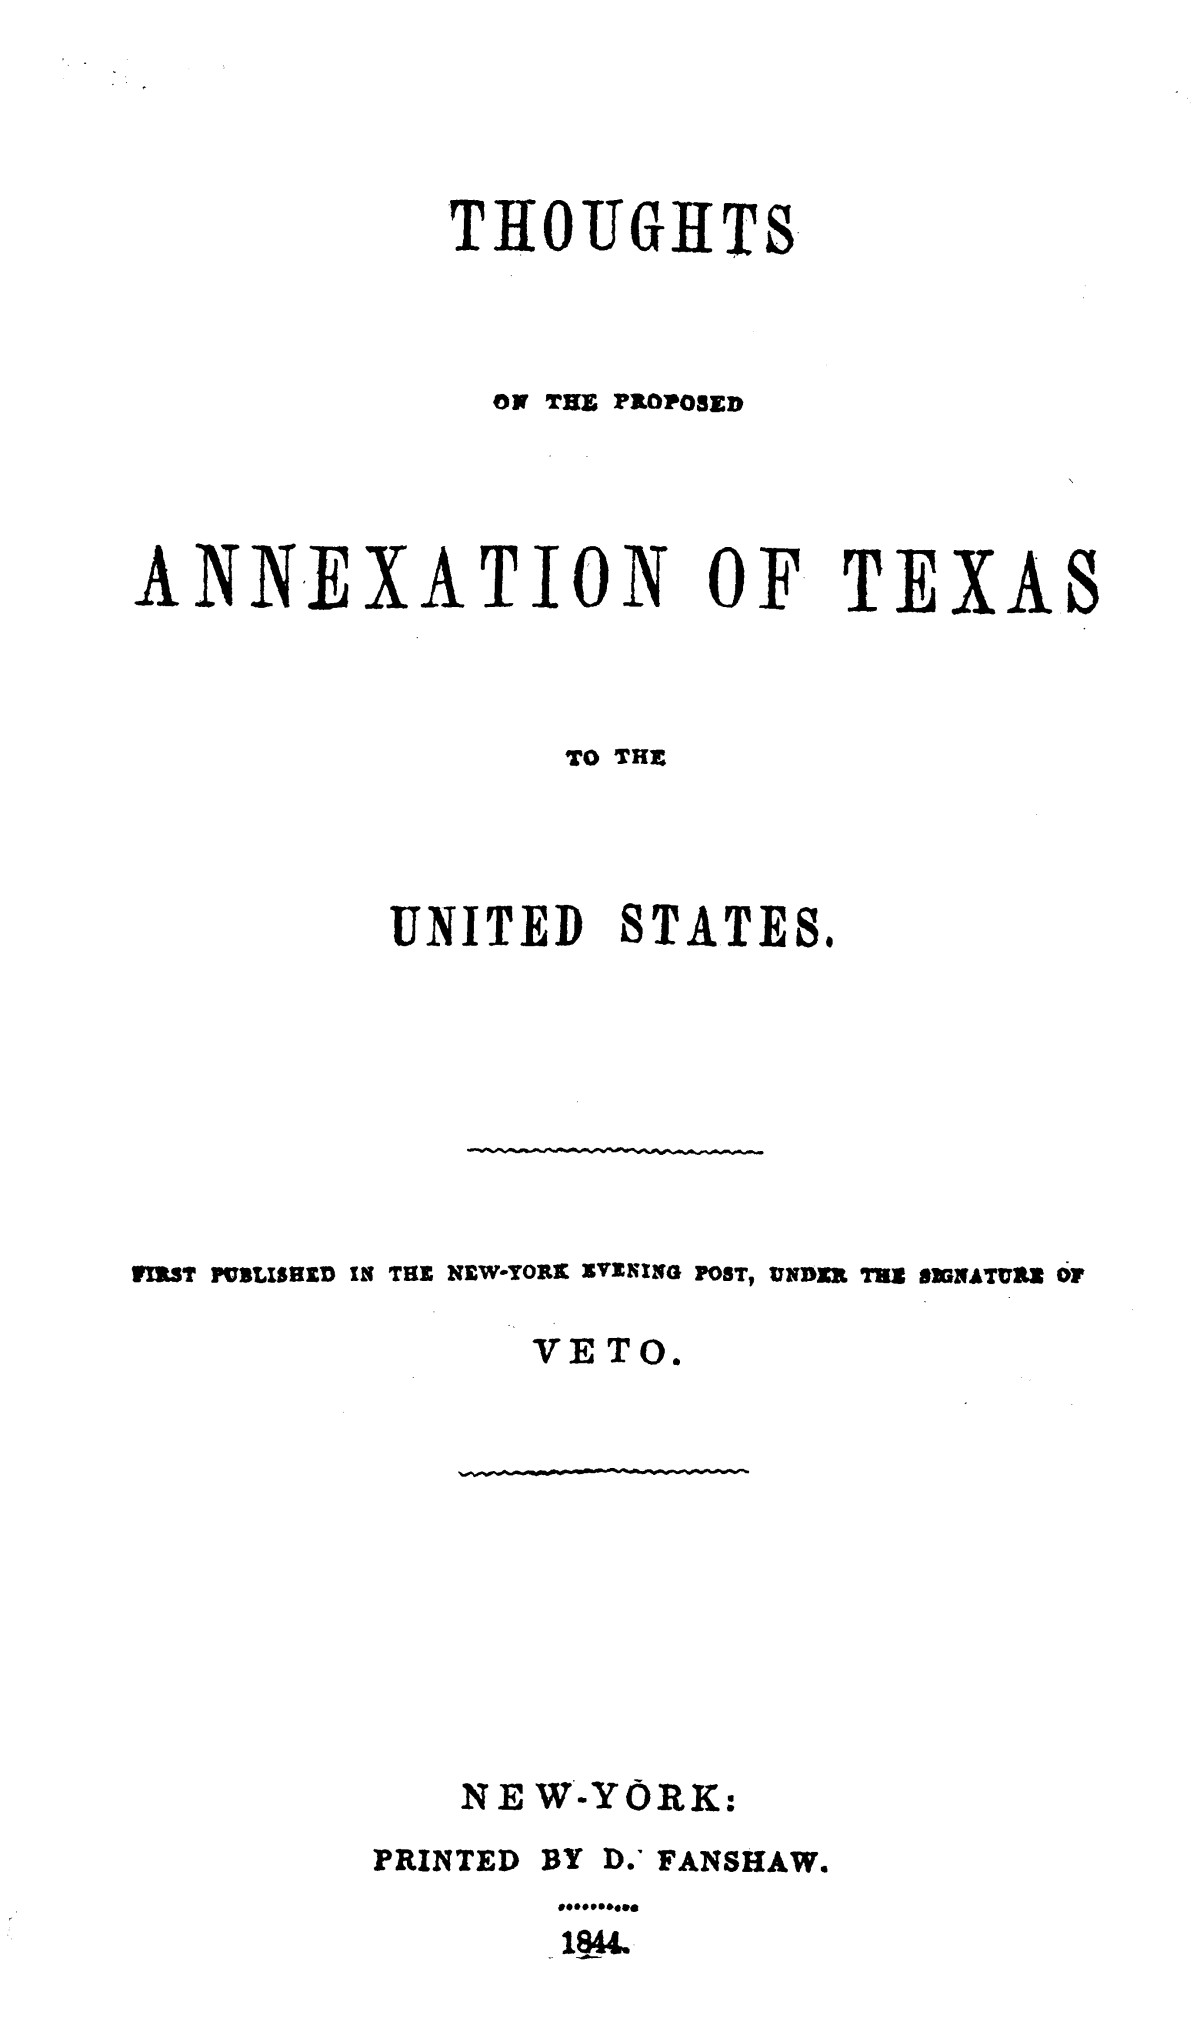 Thoughts on the proposed annexation of Texas to the United States                                                                                                      [Sequence #]: 1 of 55